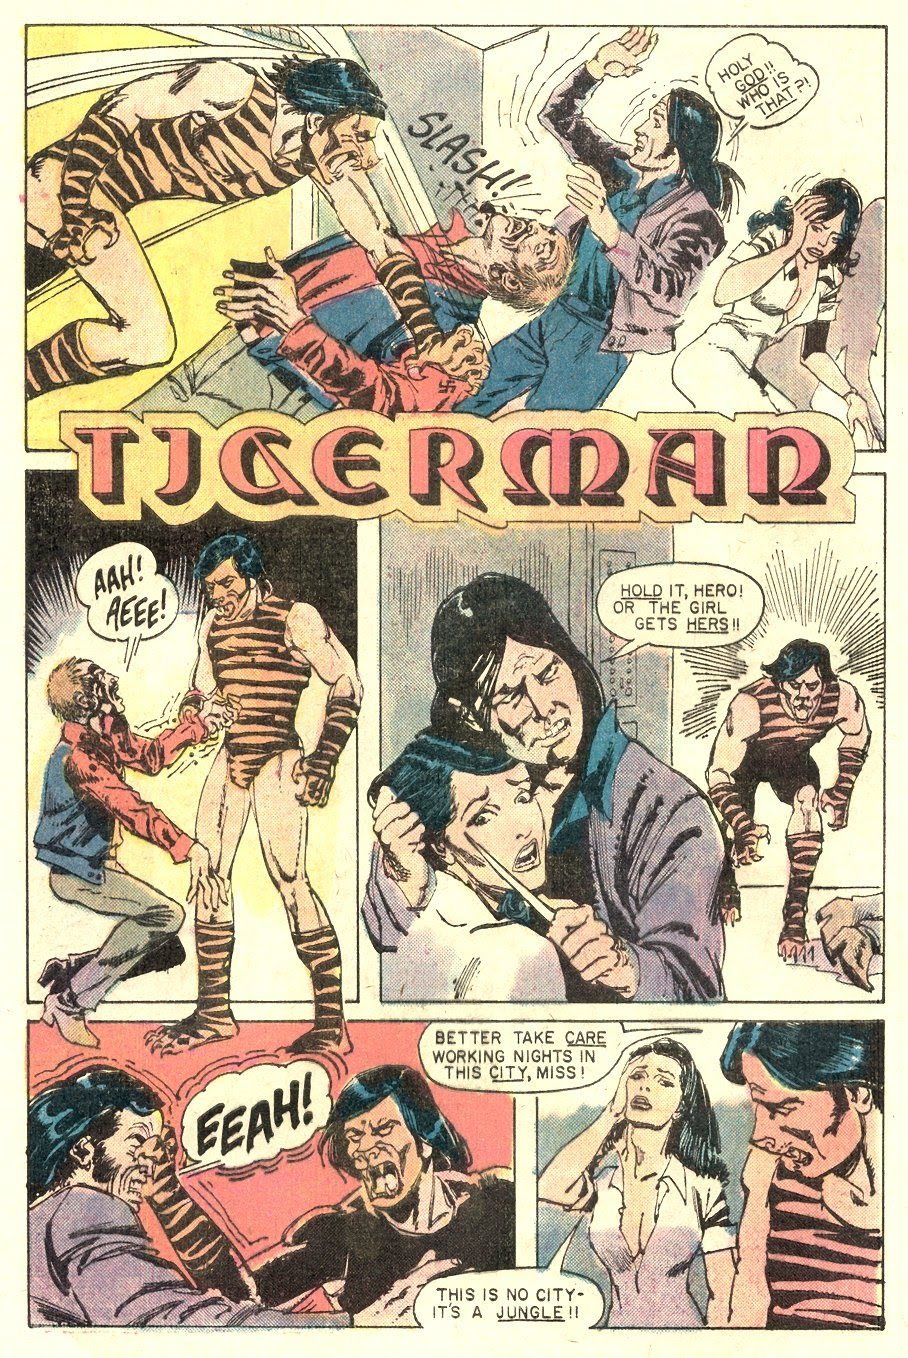 Read online Tiger-Man comic -  Issue #1 - 4